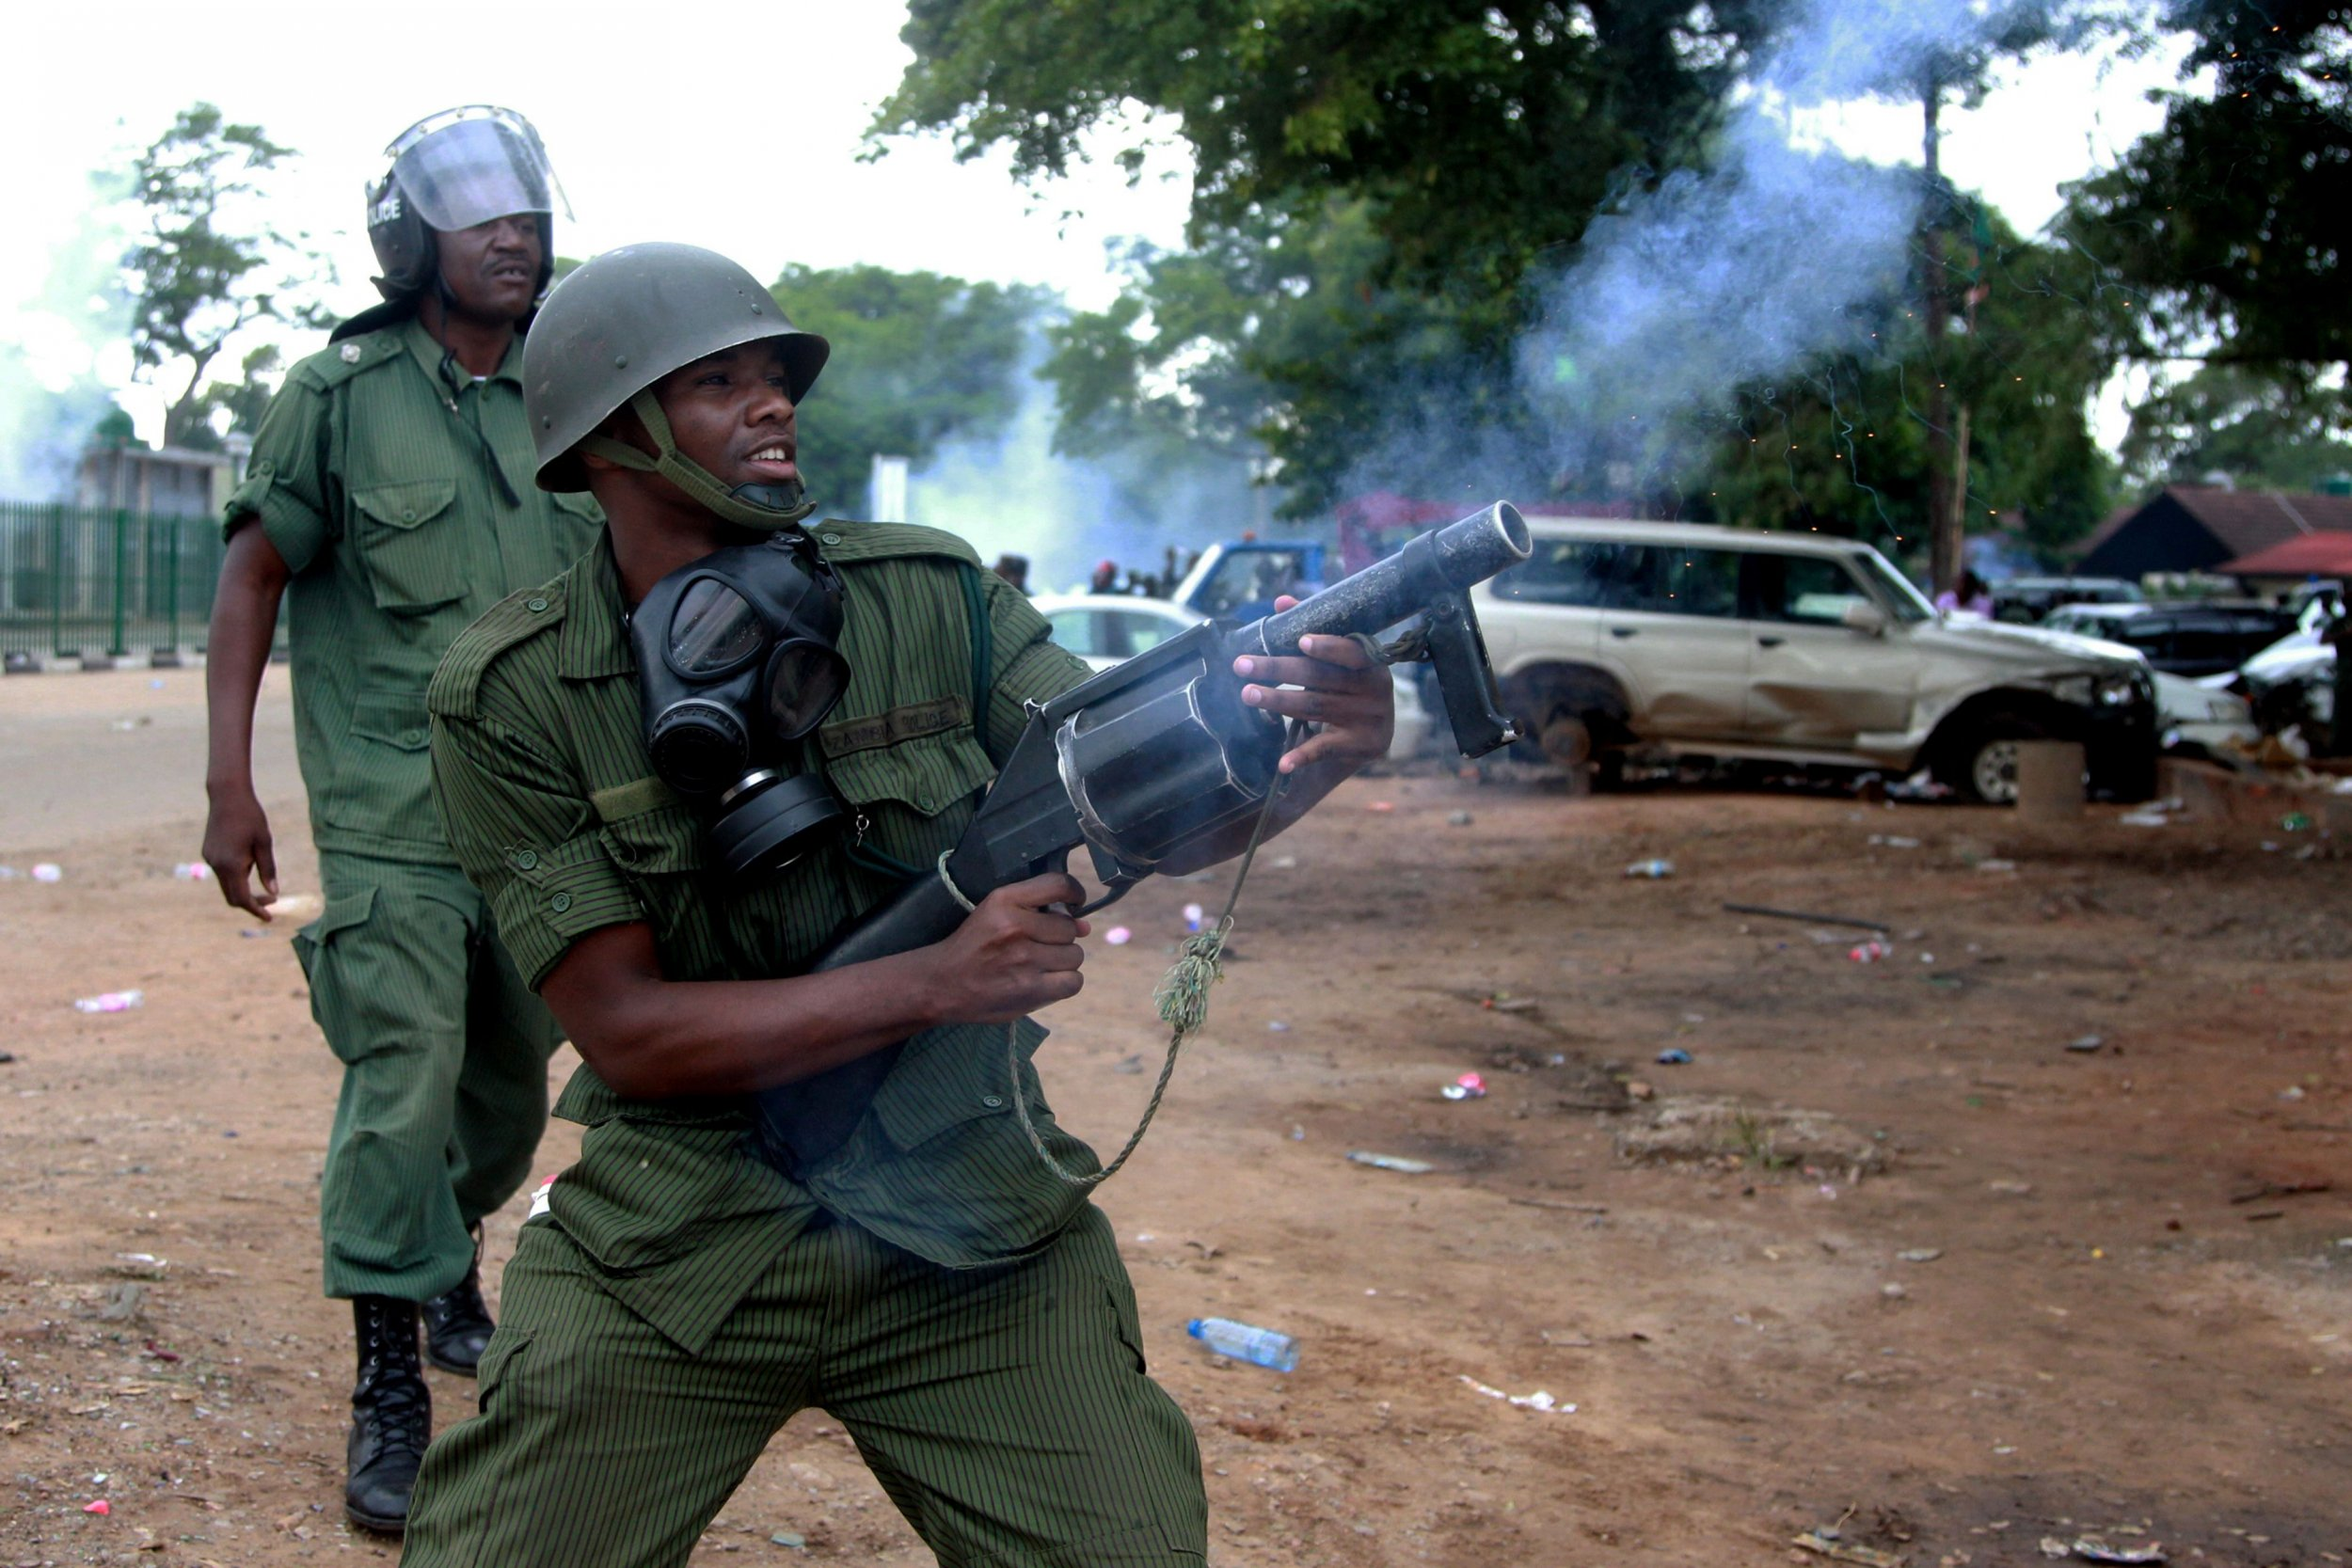 Zambia: Riots in Capital Lusaka After Spate of Ritual Killings